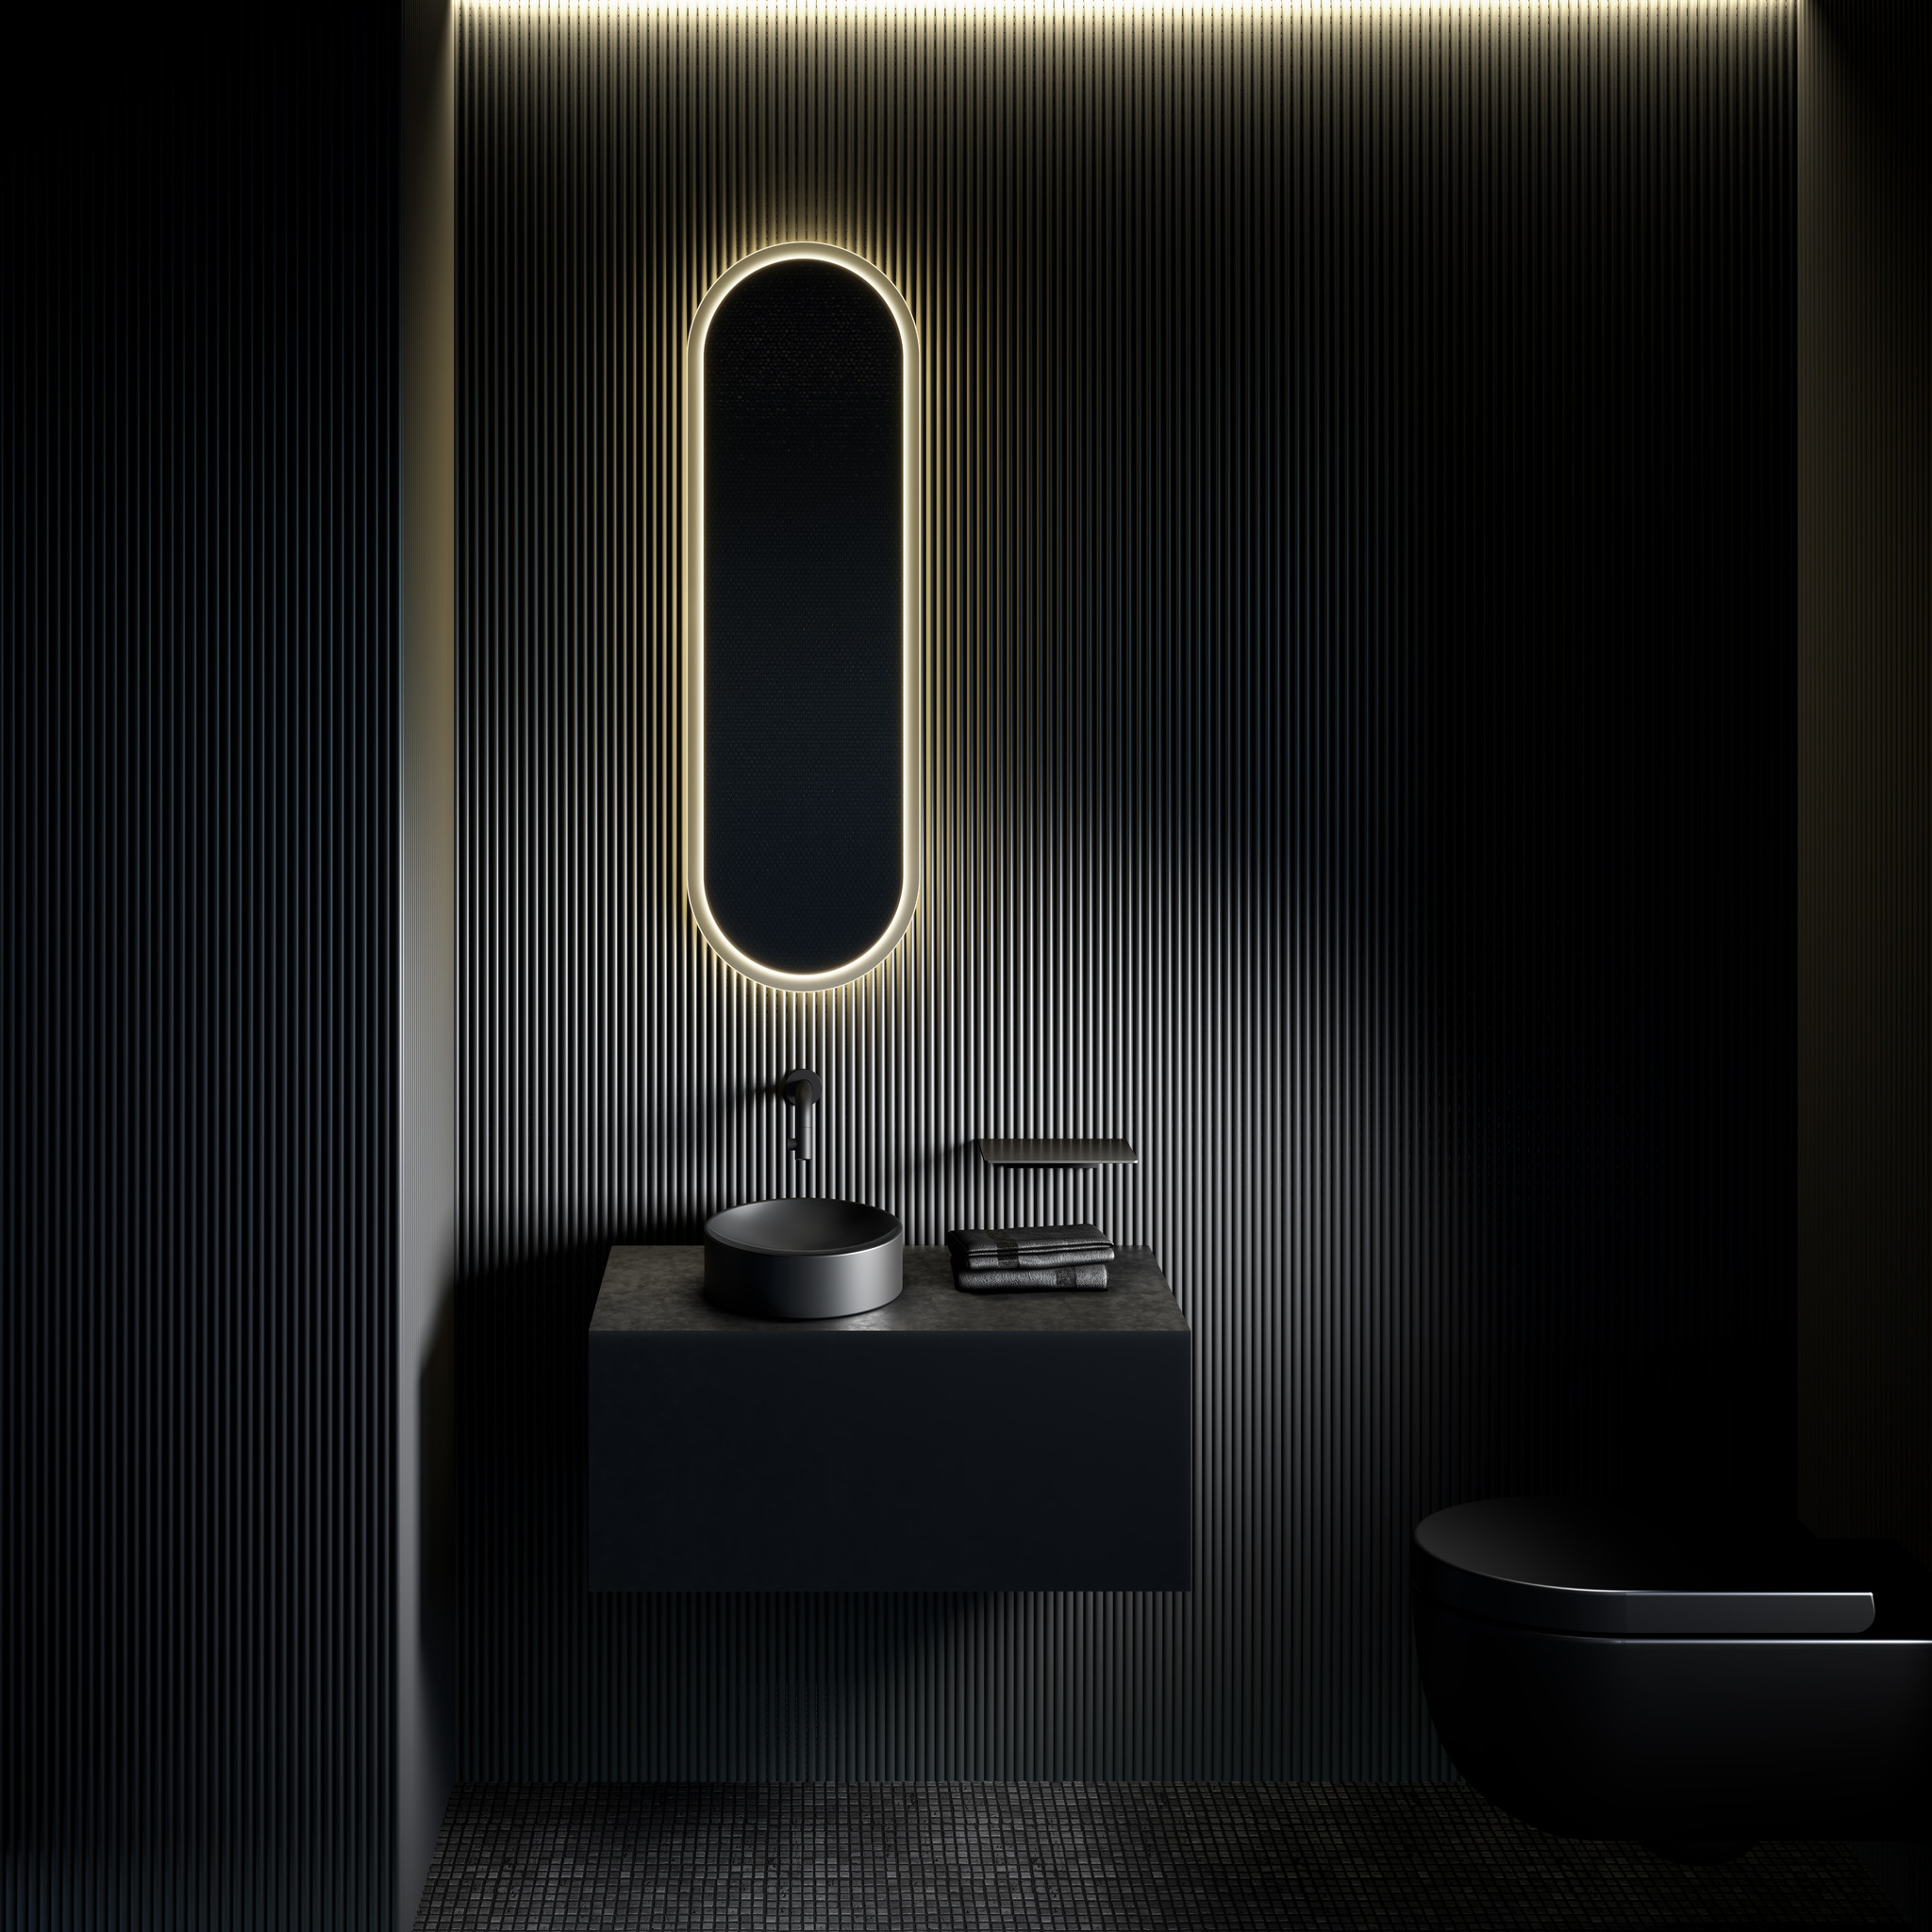 Look at Me oval mirror, satin edge, with lighting